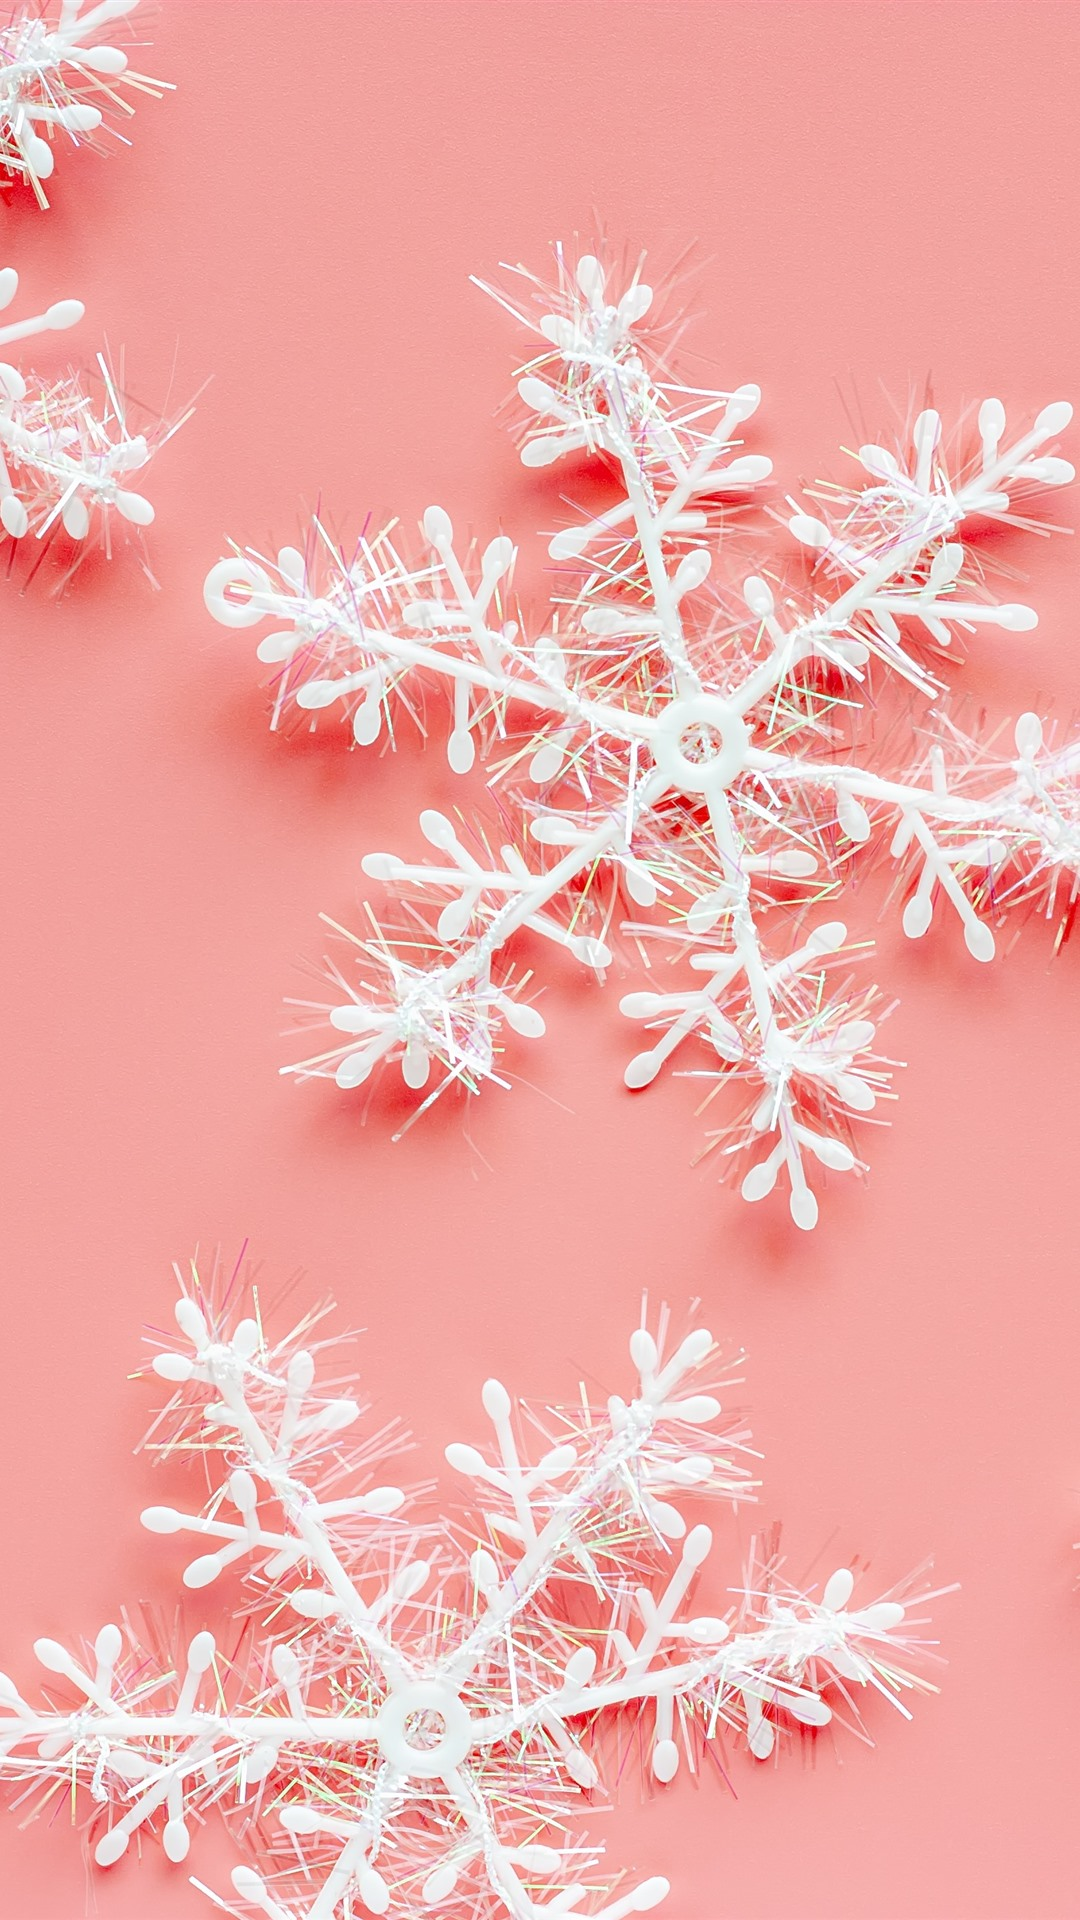 Snowflakes pink background